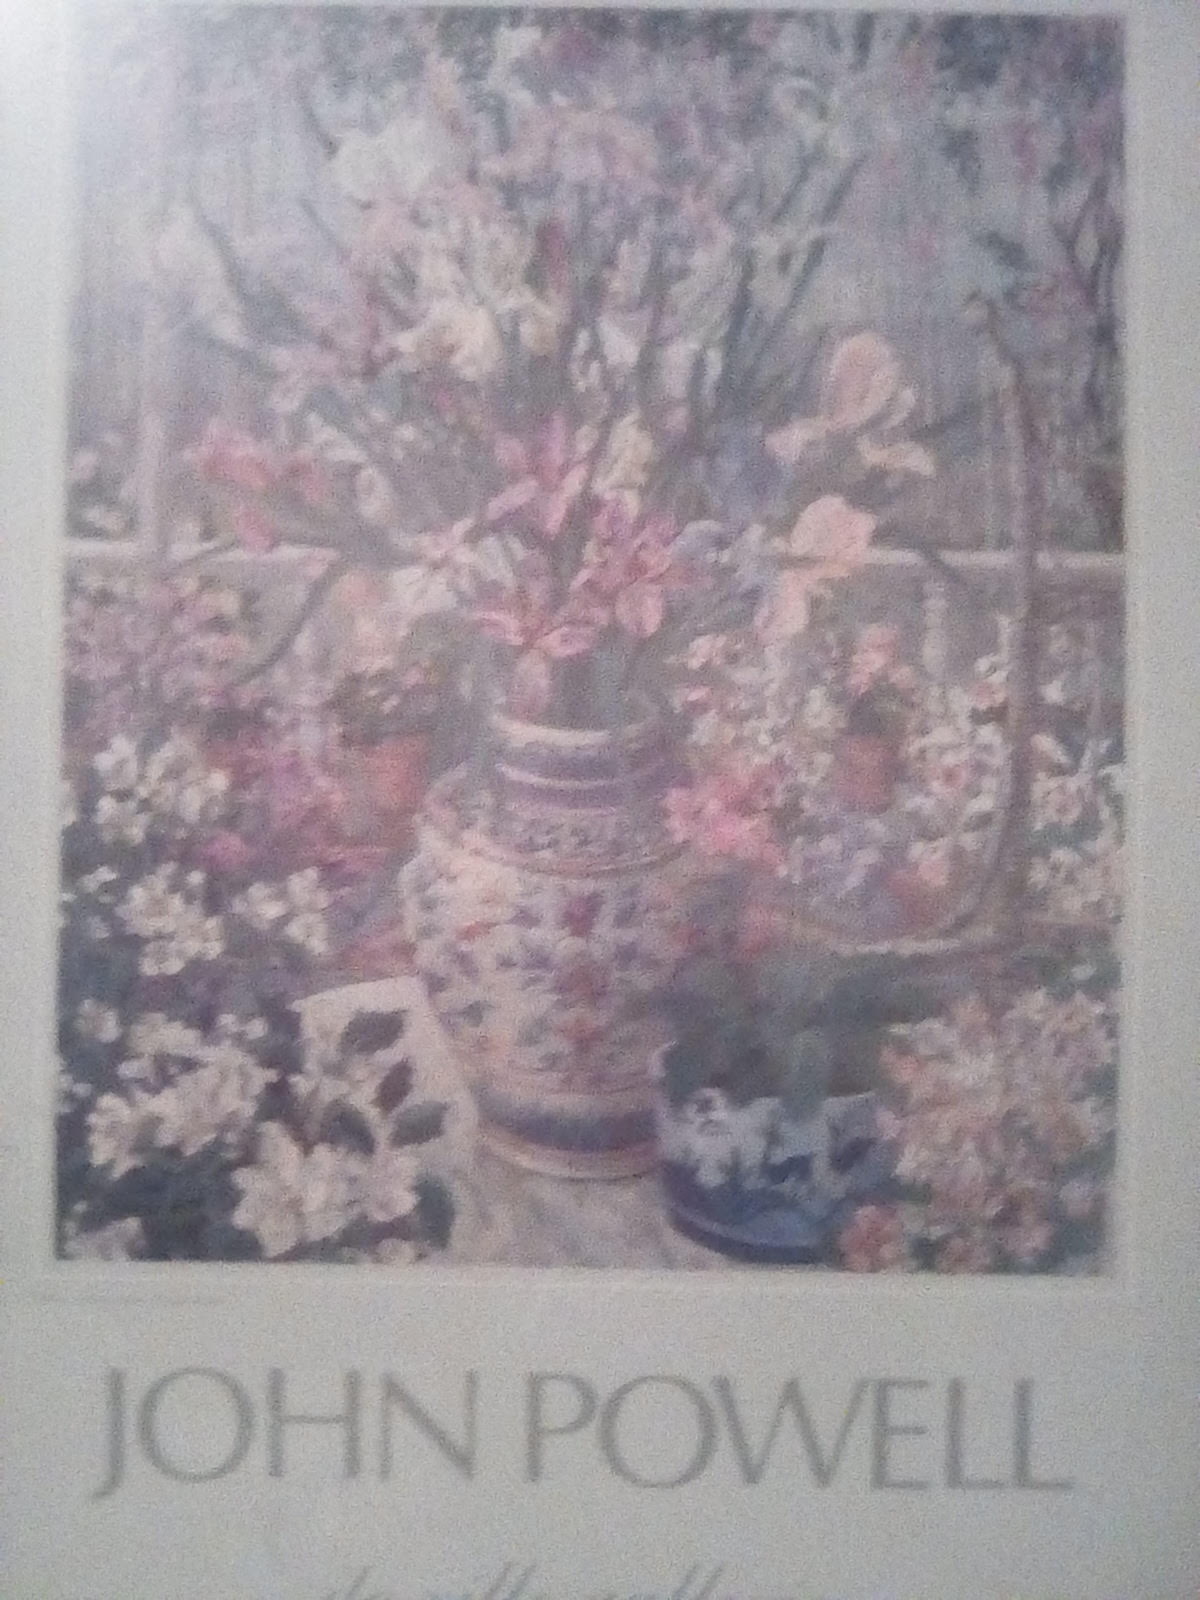 POSTER PRINT by JOHN POWELL titled